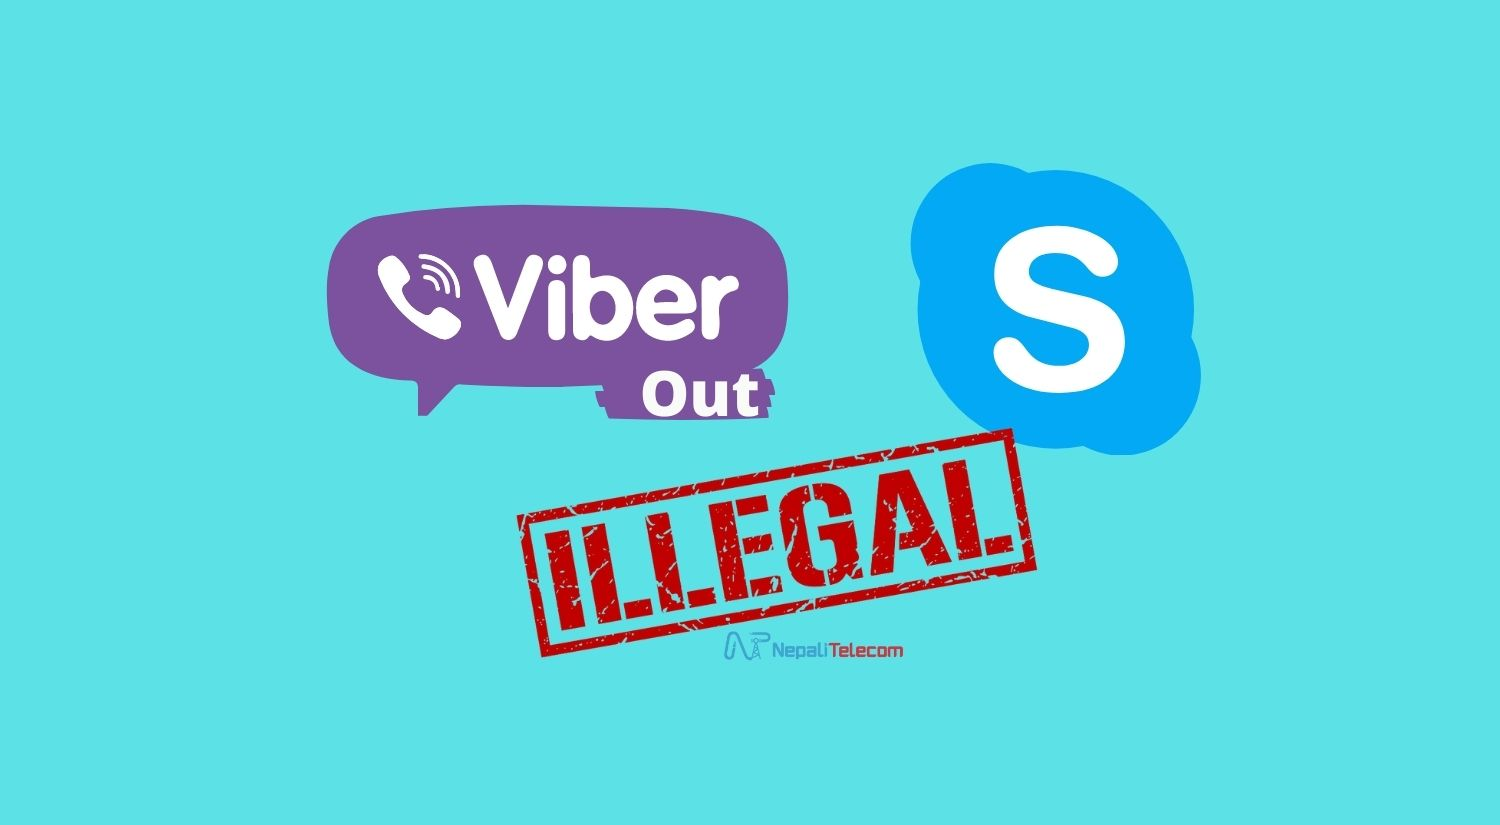 Viber out Skype out illegal in Nepal